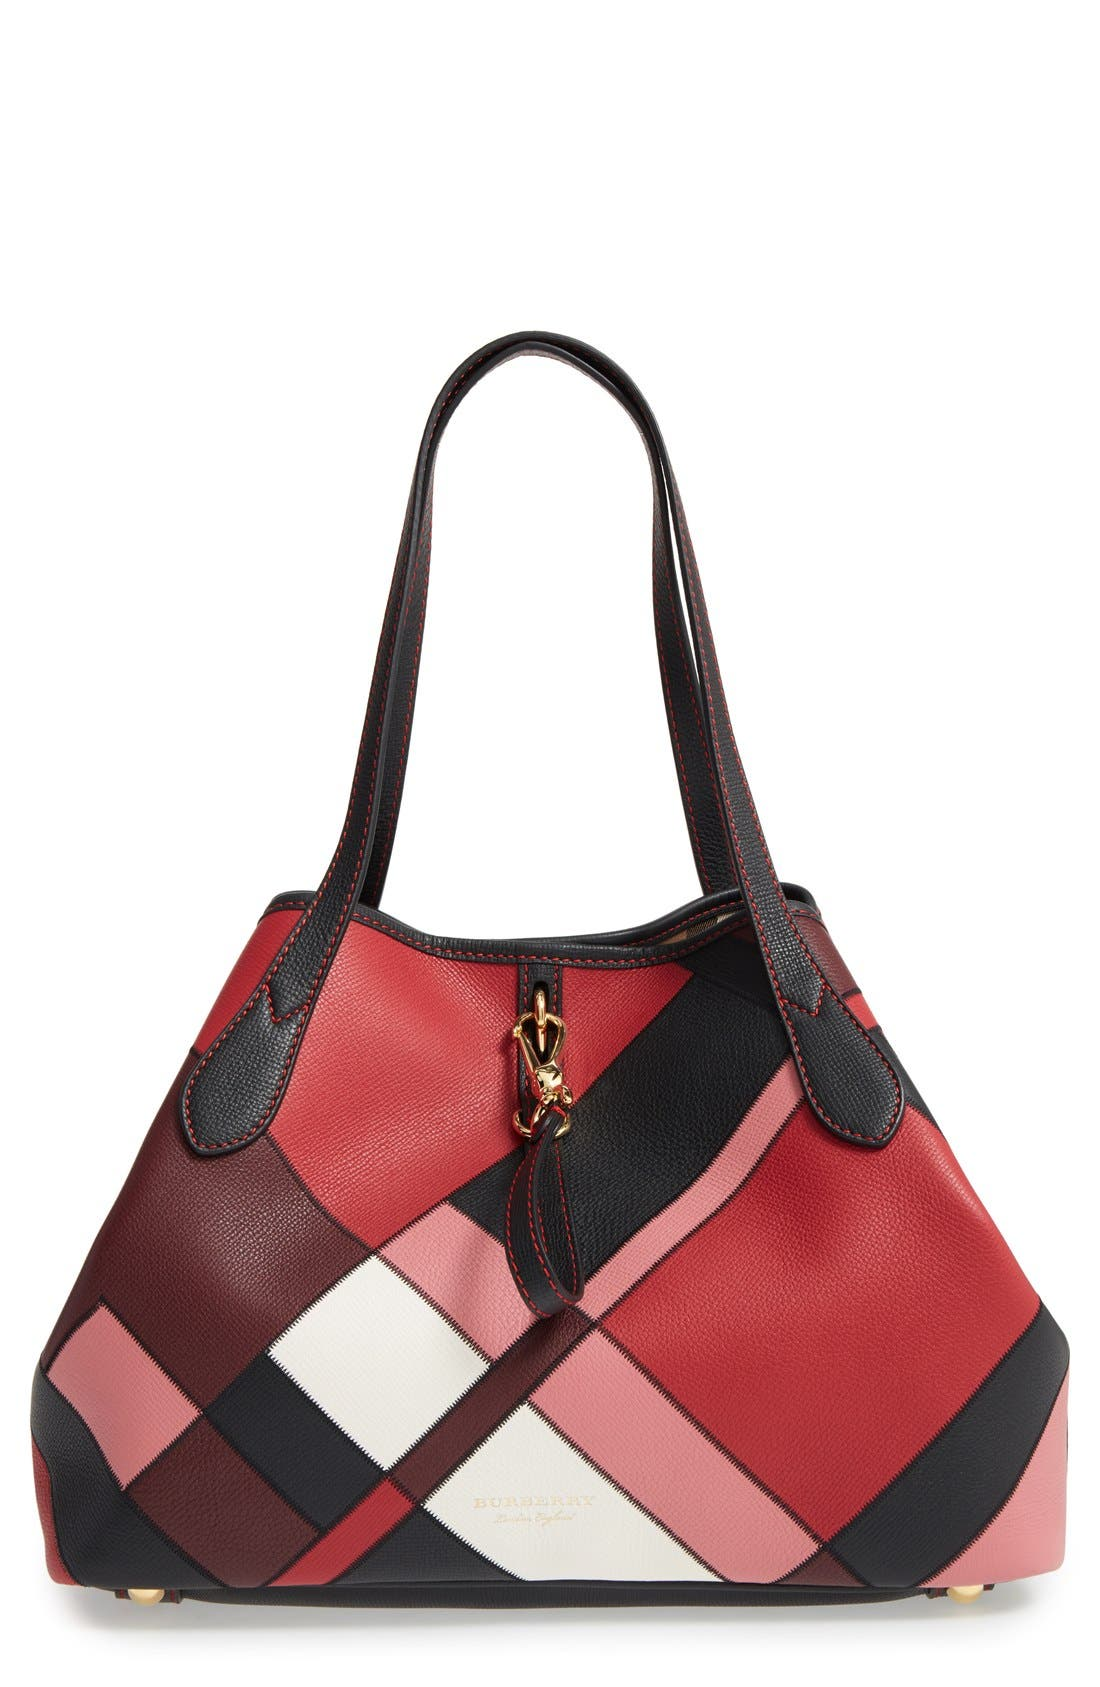 BURBERRY Medium Honeybrook Patchwork Leather Tote